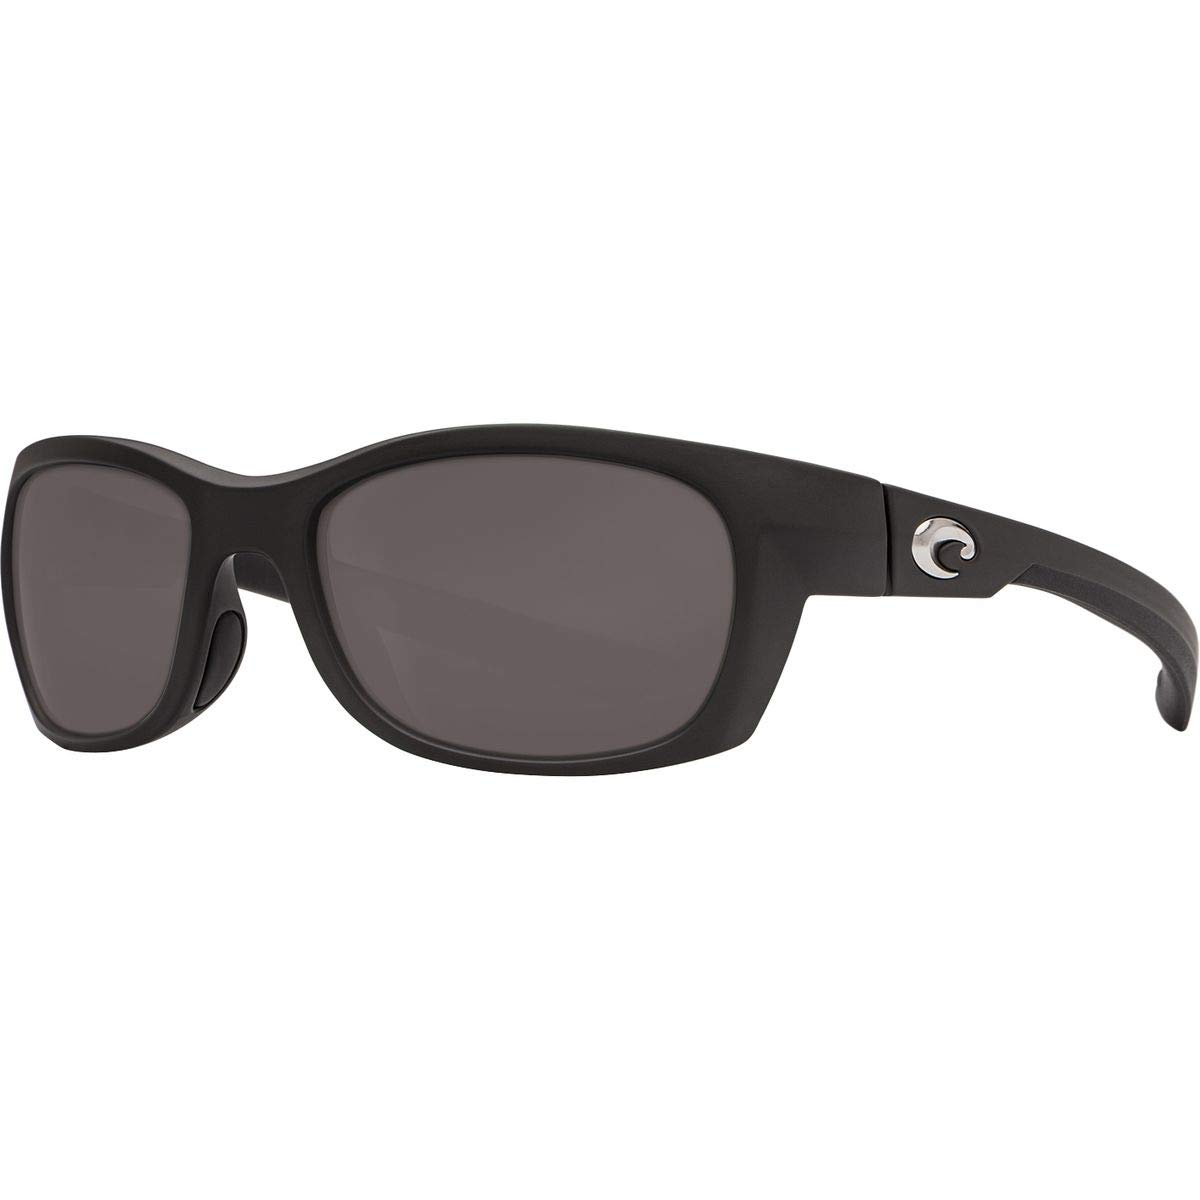 Amazon.com: Costa Trevally - Gafas de sol polarizadas ...